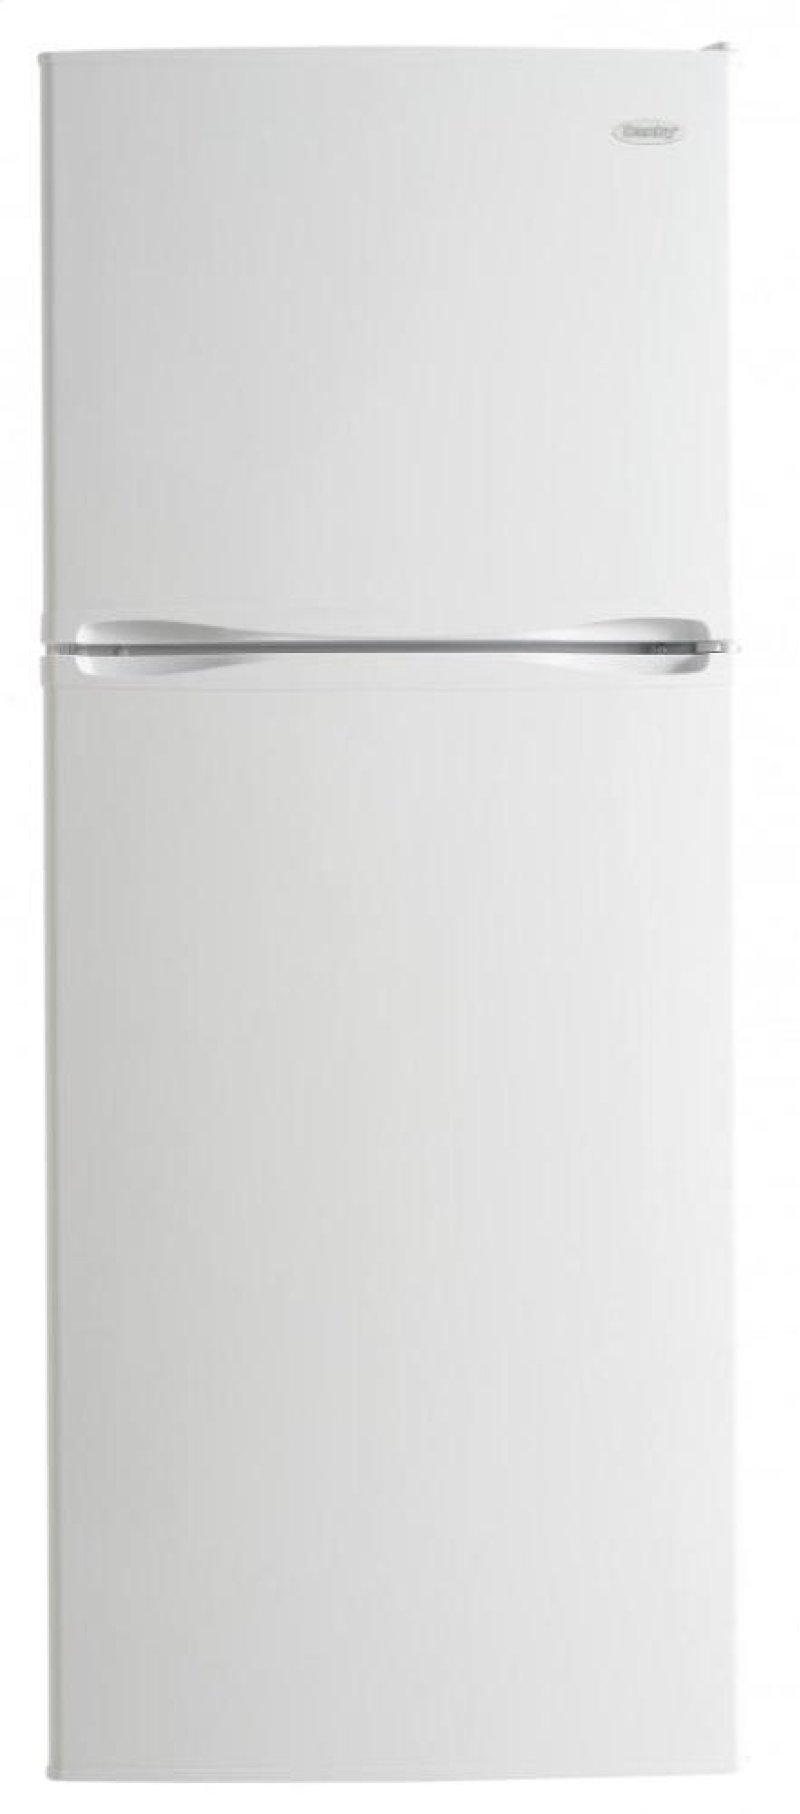 danby in burlington vt danby 10 apartment size refrigerator